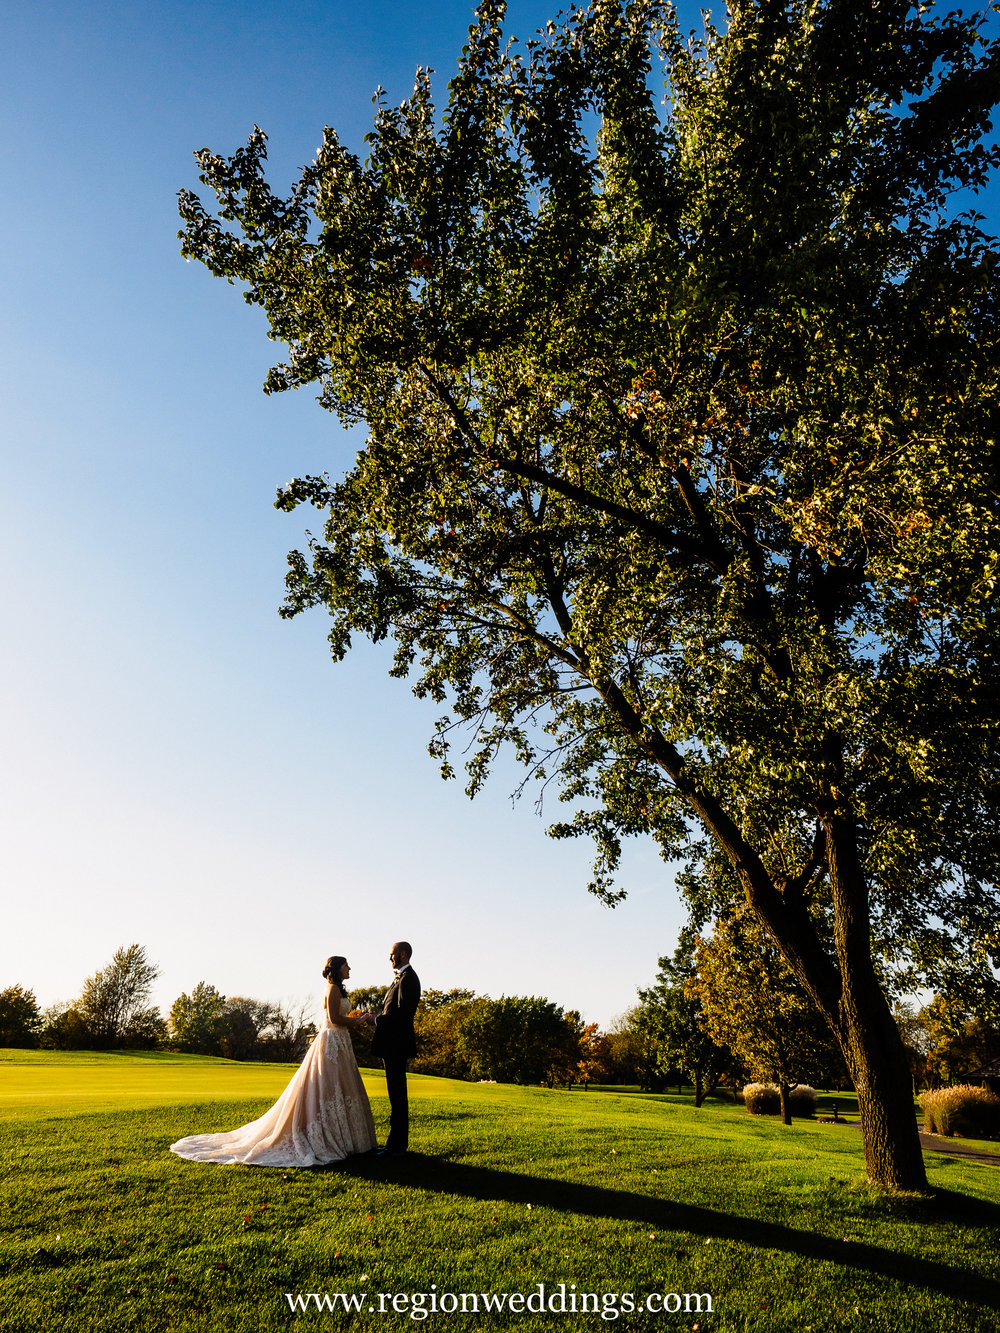 Bride and groom under a tree at Briar Ridge Country Club in Dyer, Indiana.